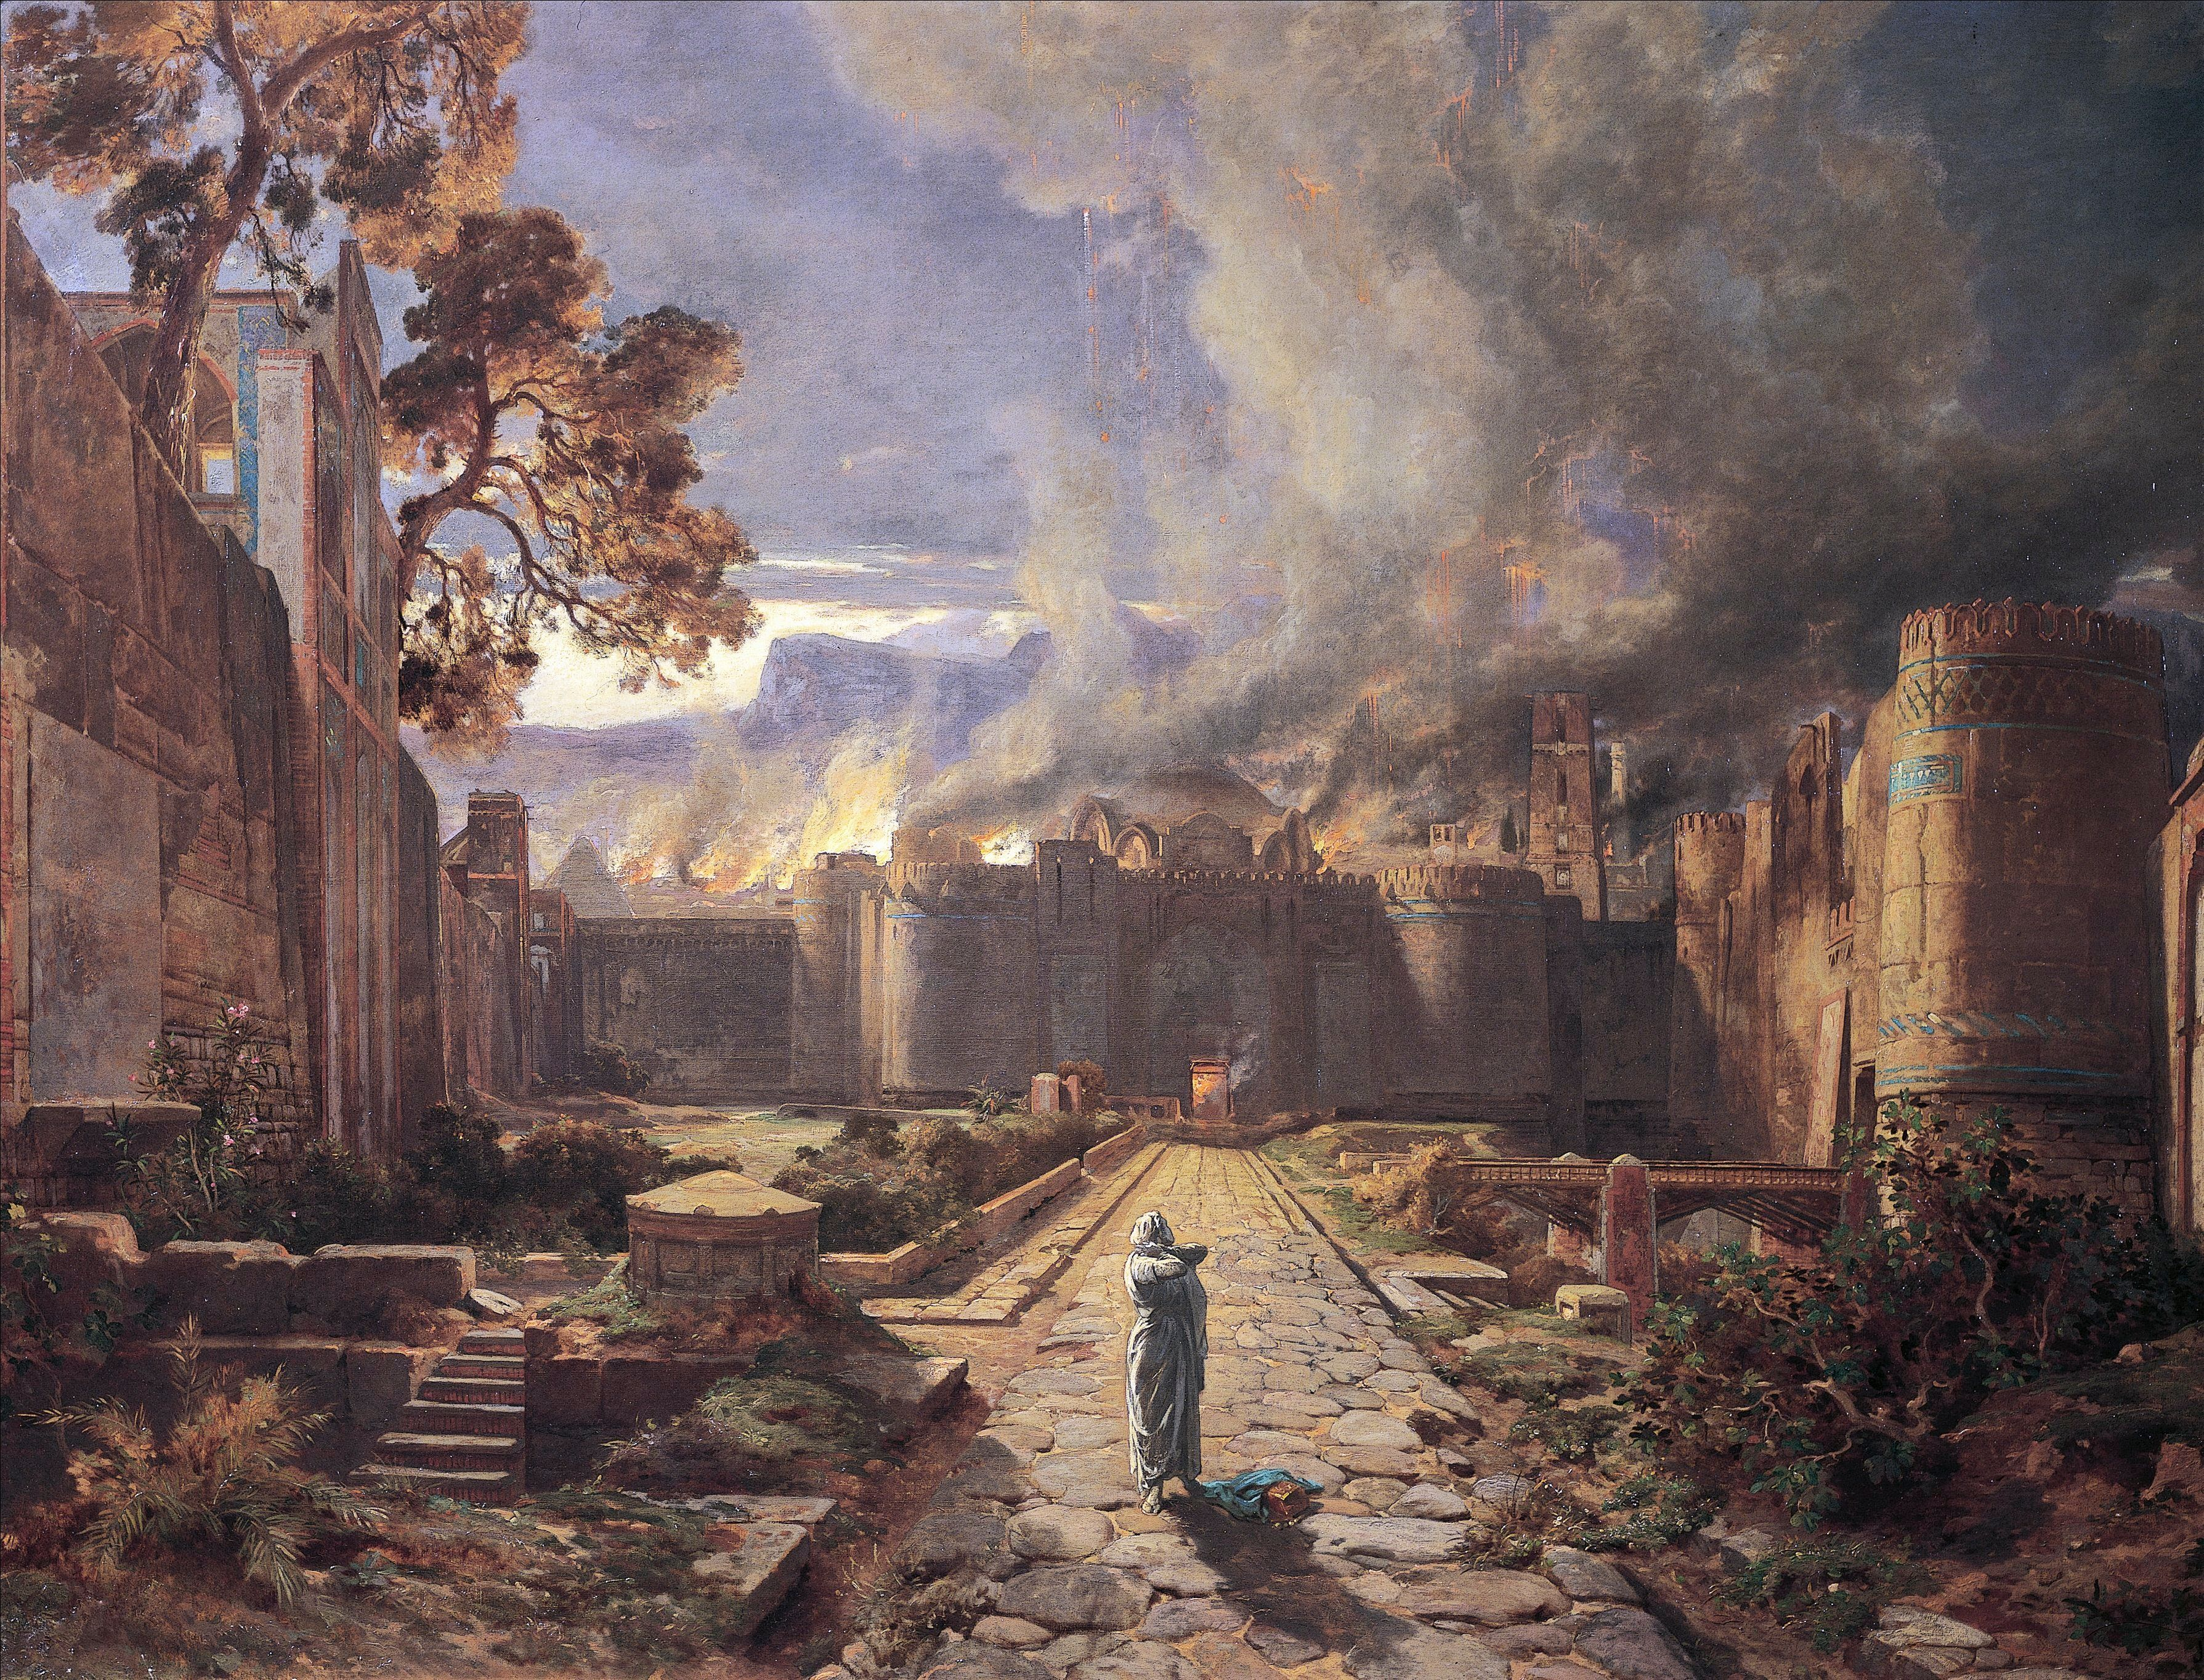 The destruction of Sodom and Gomorrah, by Jules-Joseph-Augustin Laurens (1825-1901).